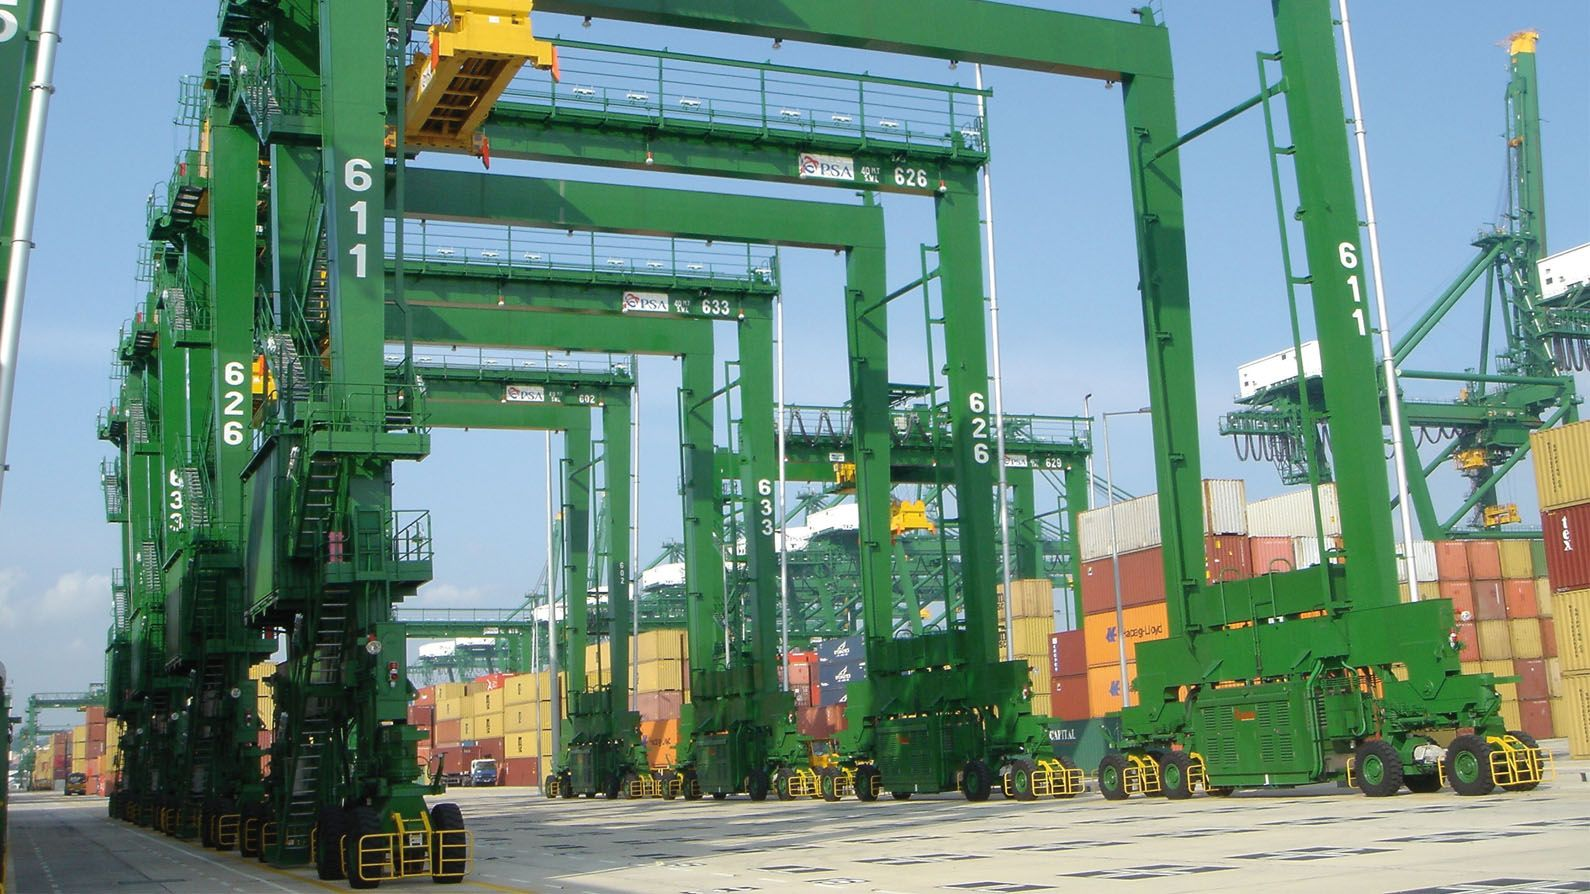 Port of Ningbo, China - Ship-To-Shore (STS) cranes